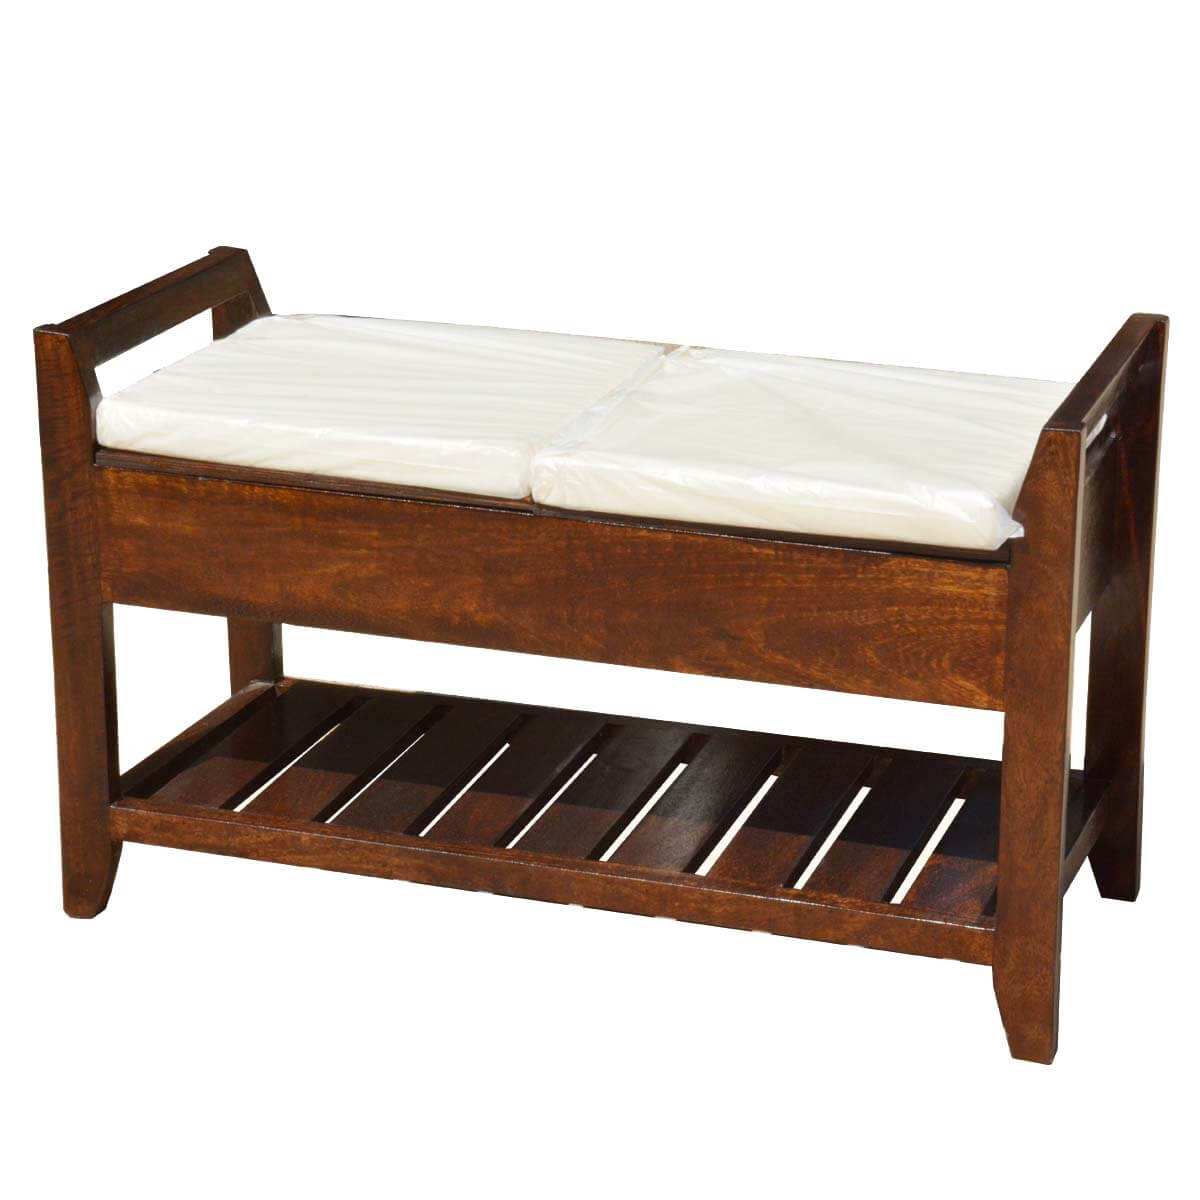 Rustic mission mango wood cushioned storage bench w bottom rack Storage benches